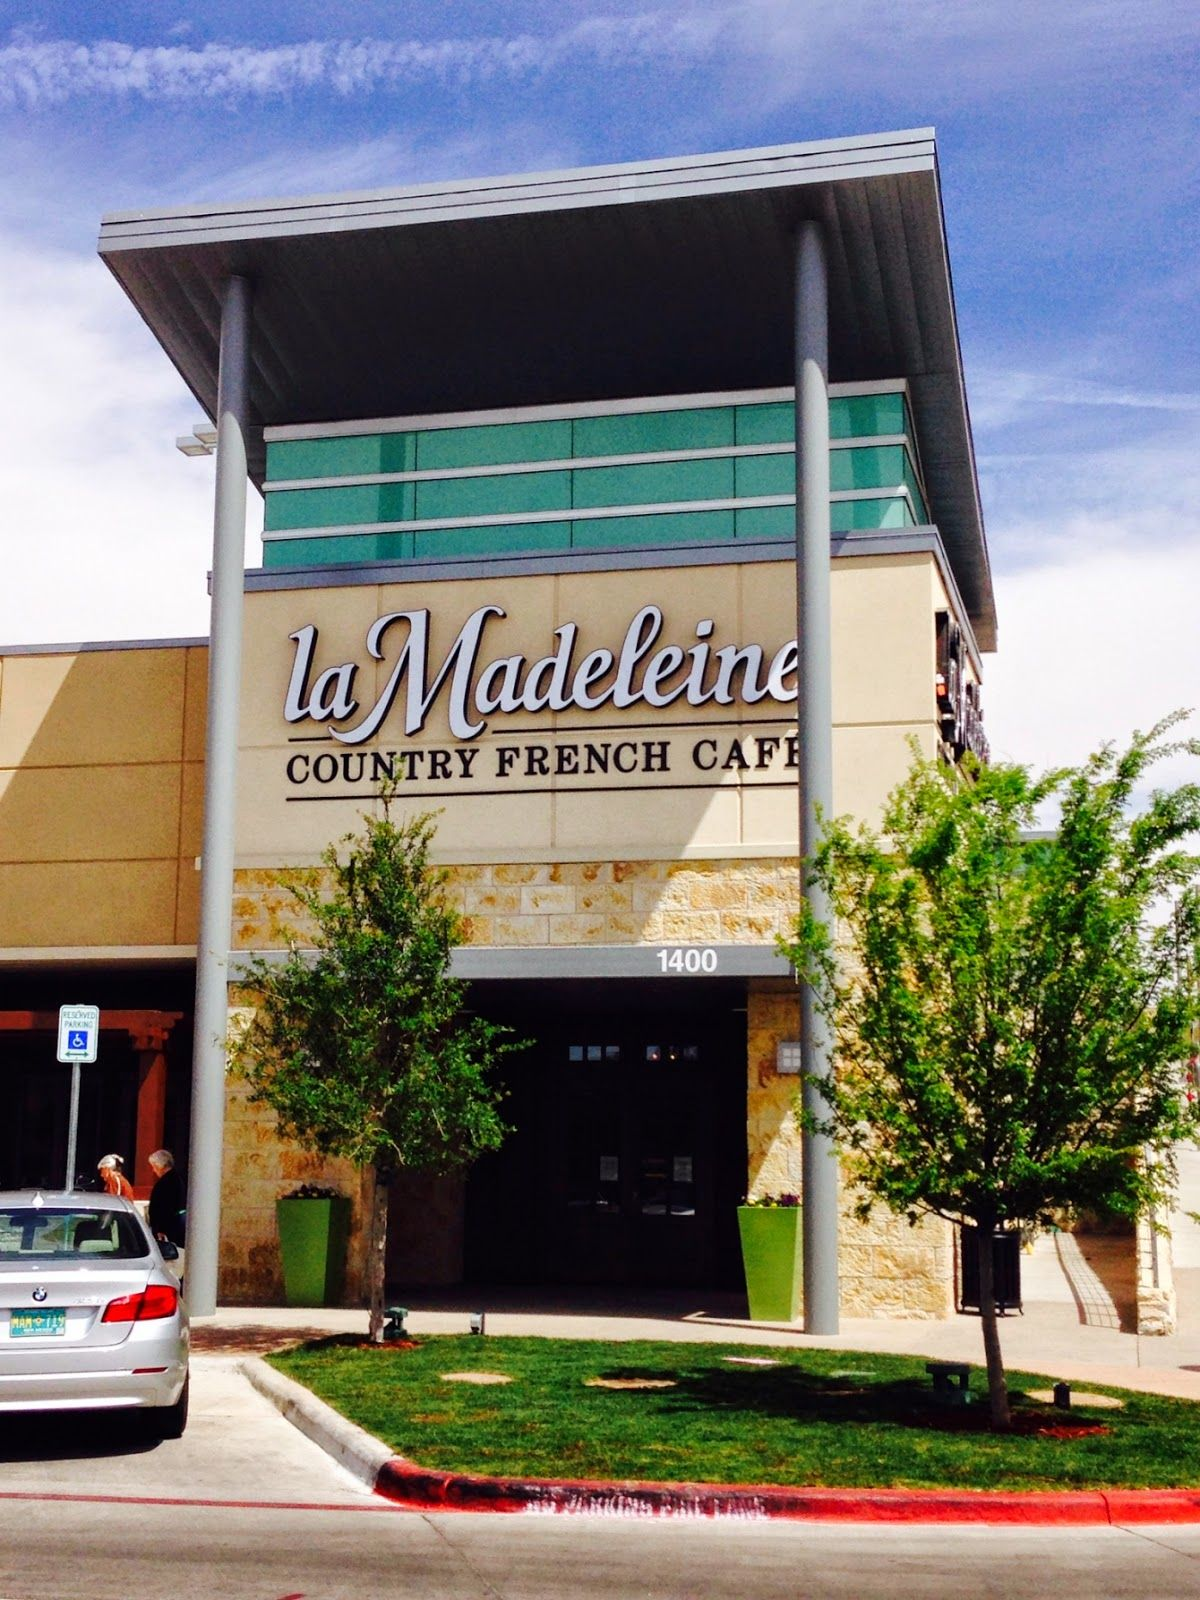 Garage Doors El Paso Texas La Madeleine I Couldn T Wait For It To Open Fountains At Farah